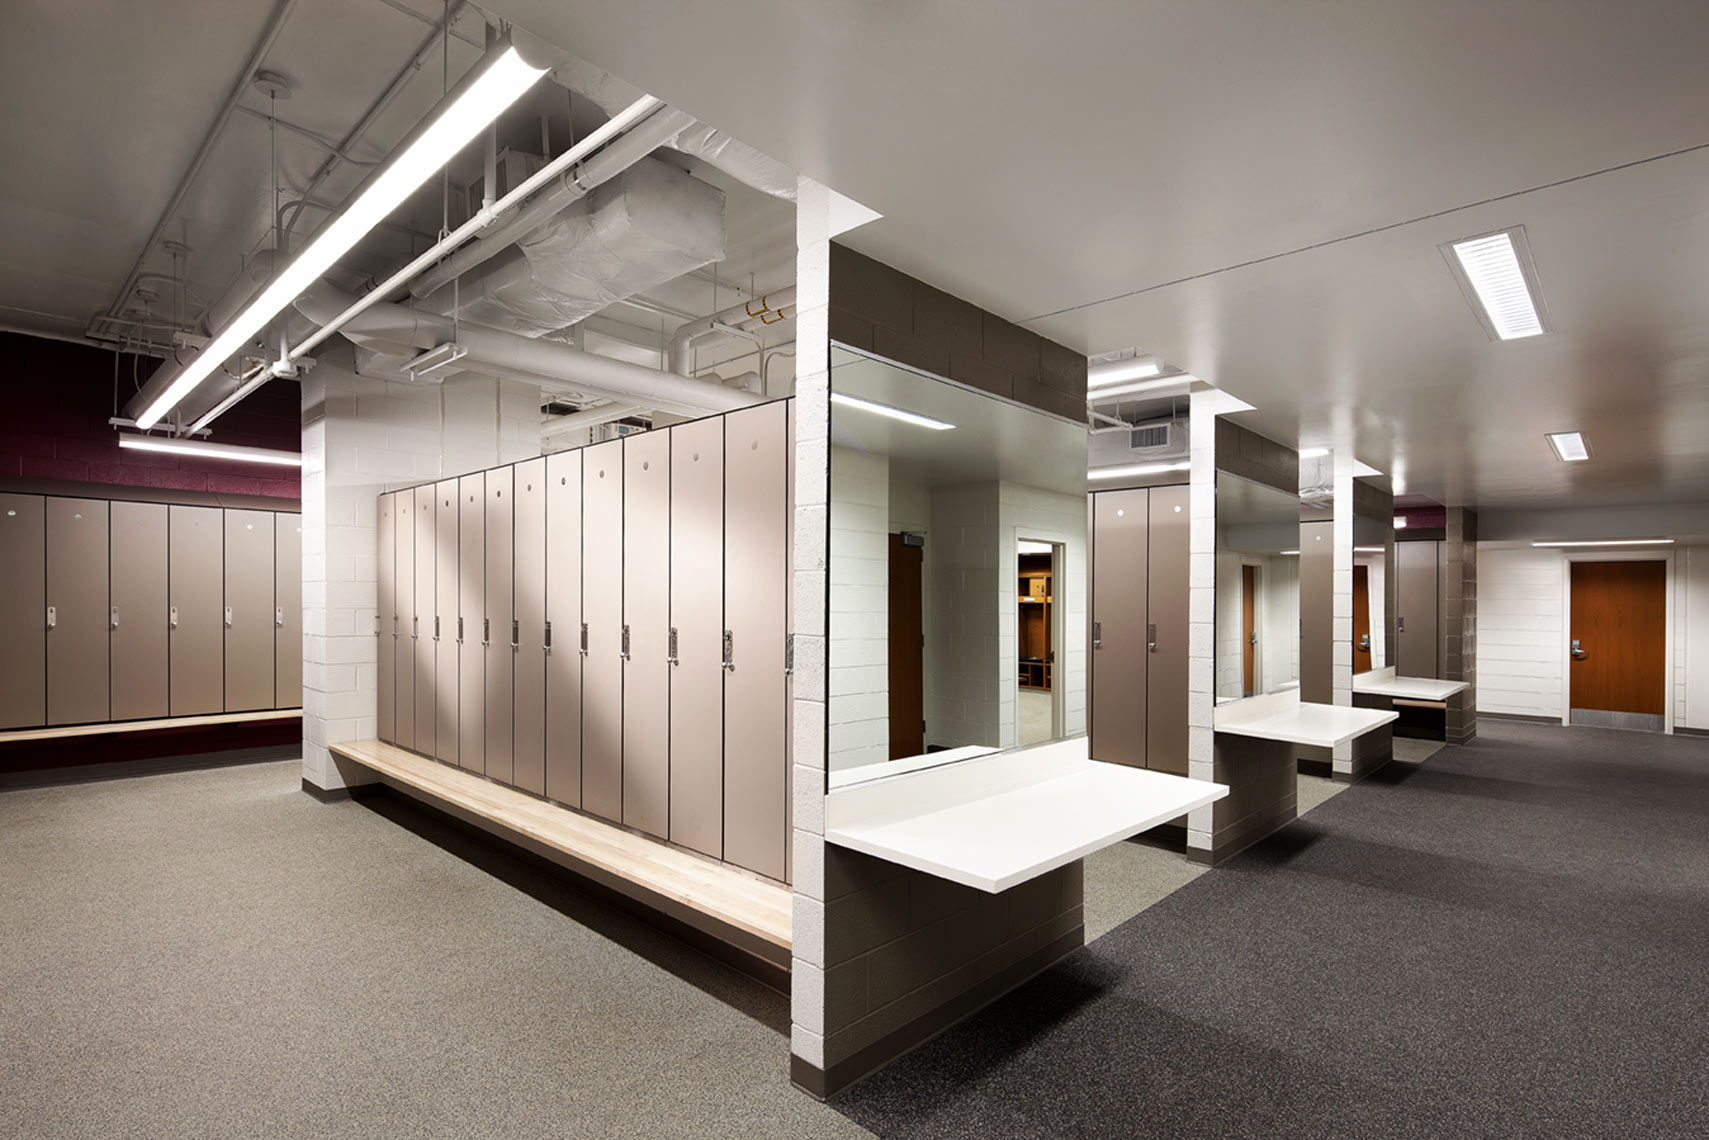 architectural photograph of a high school gym locker room